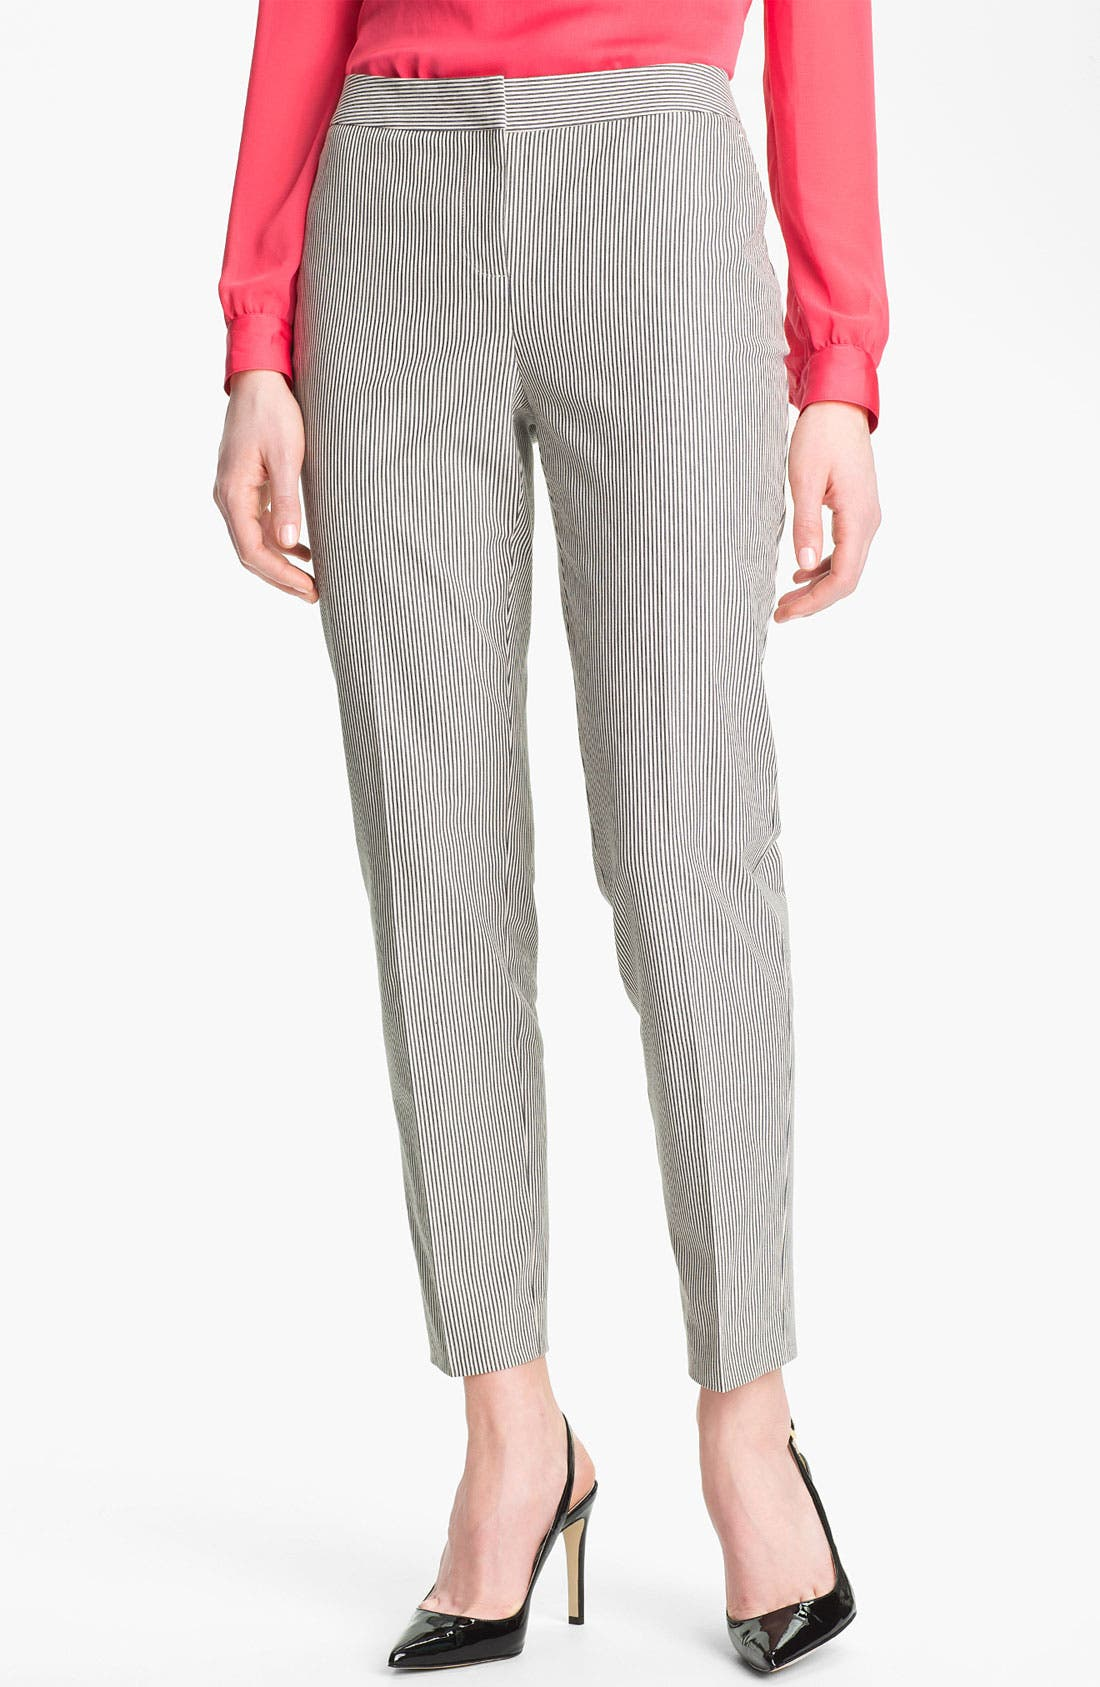 Alternate Image 1 Selected - Halogen 'Taylor' Patterned Skinny Ankle Pants